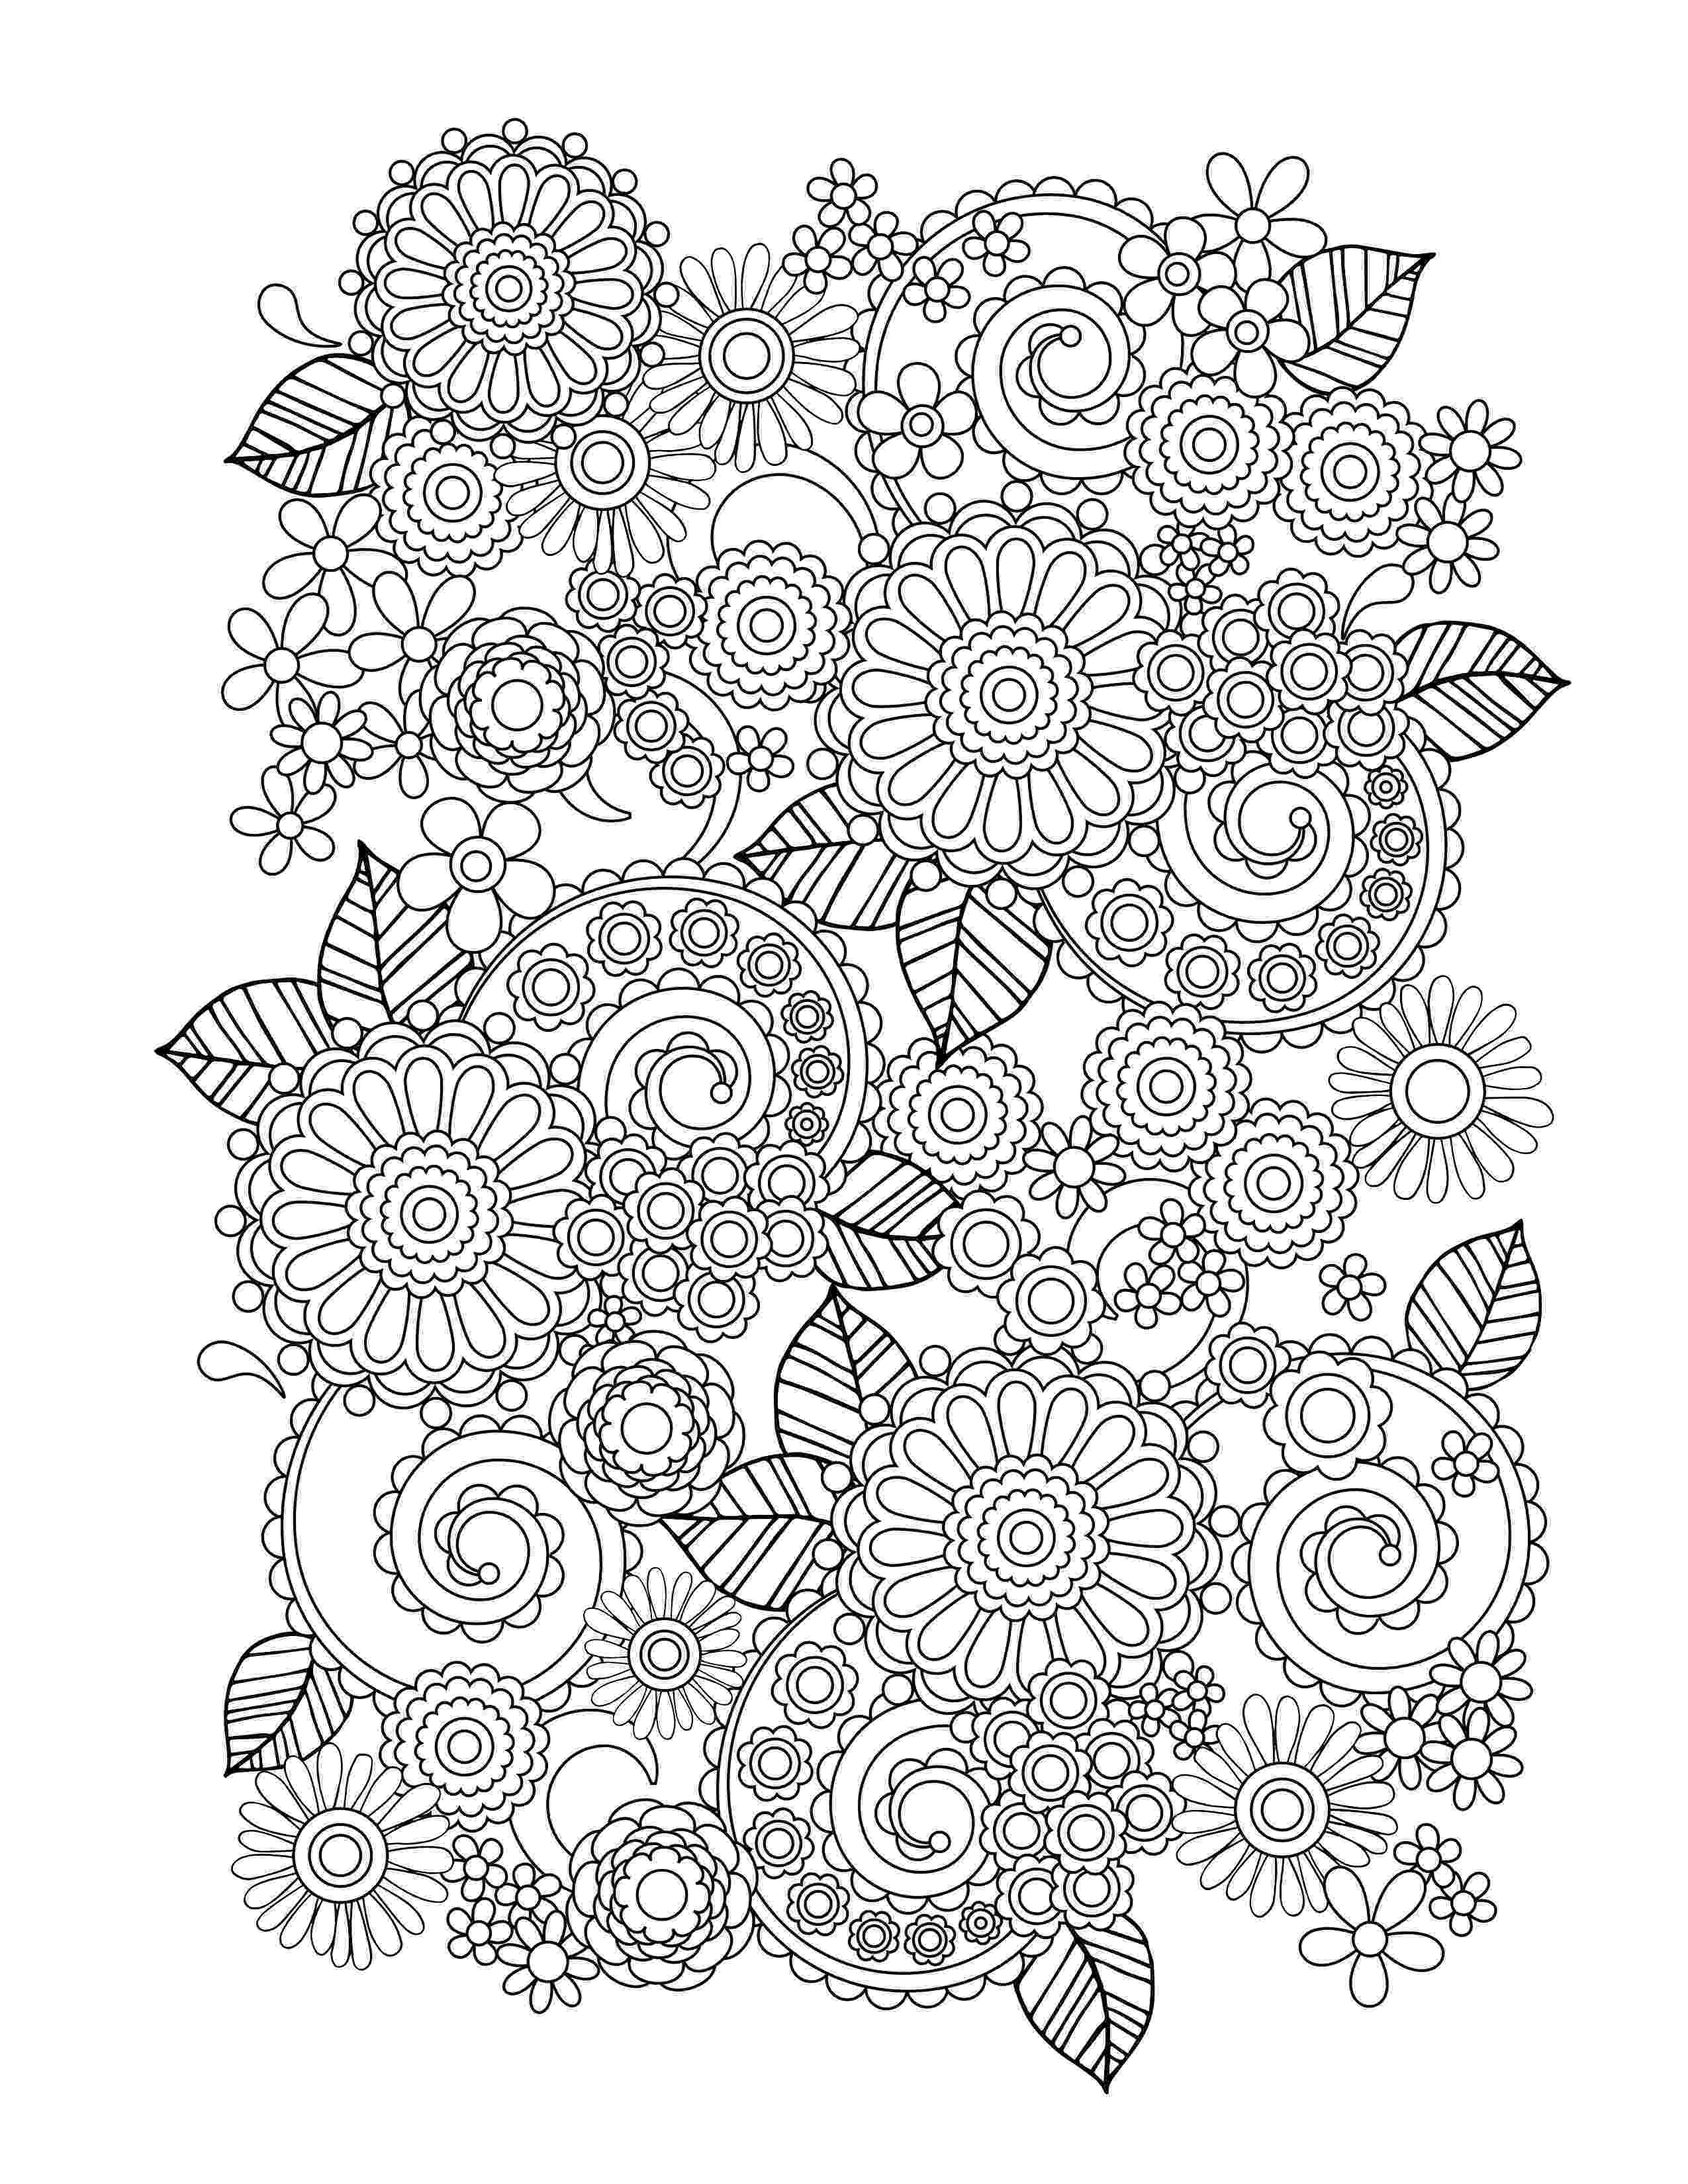 coloring book for adults where to flower coloring pages for adults best coloring pages for adults where coloring for to book